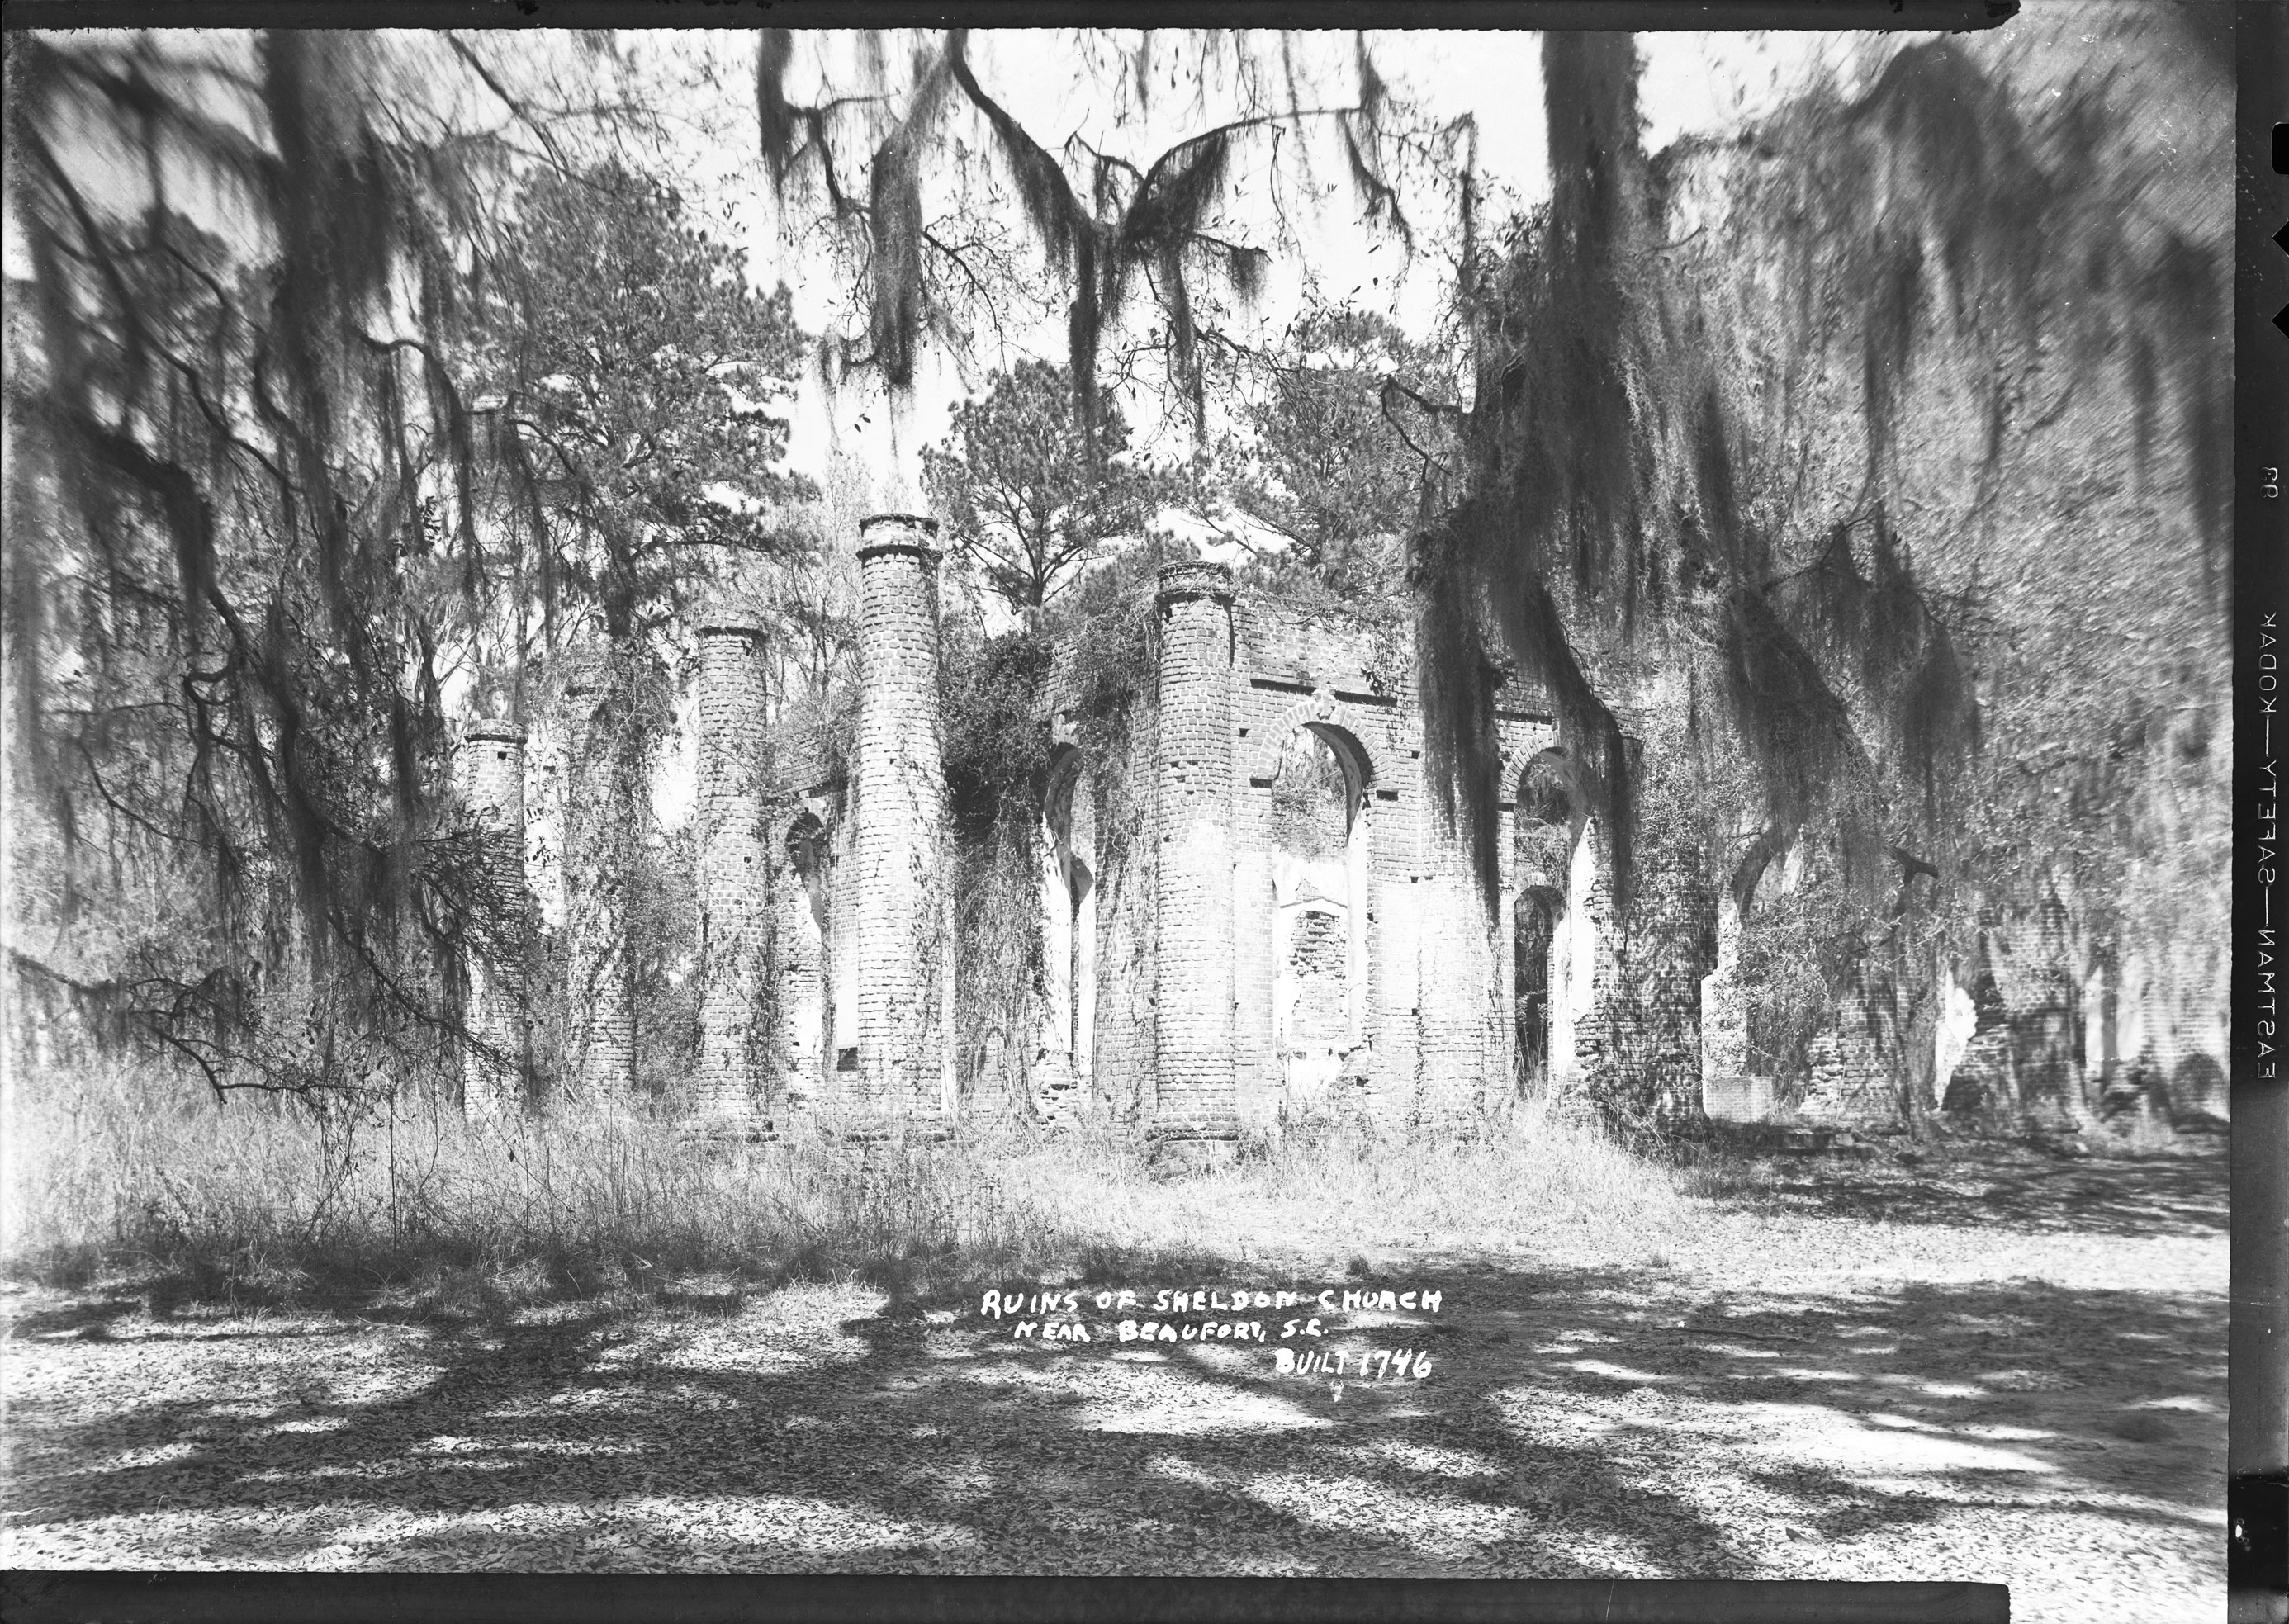 Ruins of Sheldon Church near Beaufort, S.C. Built 1746.